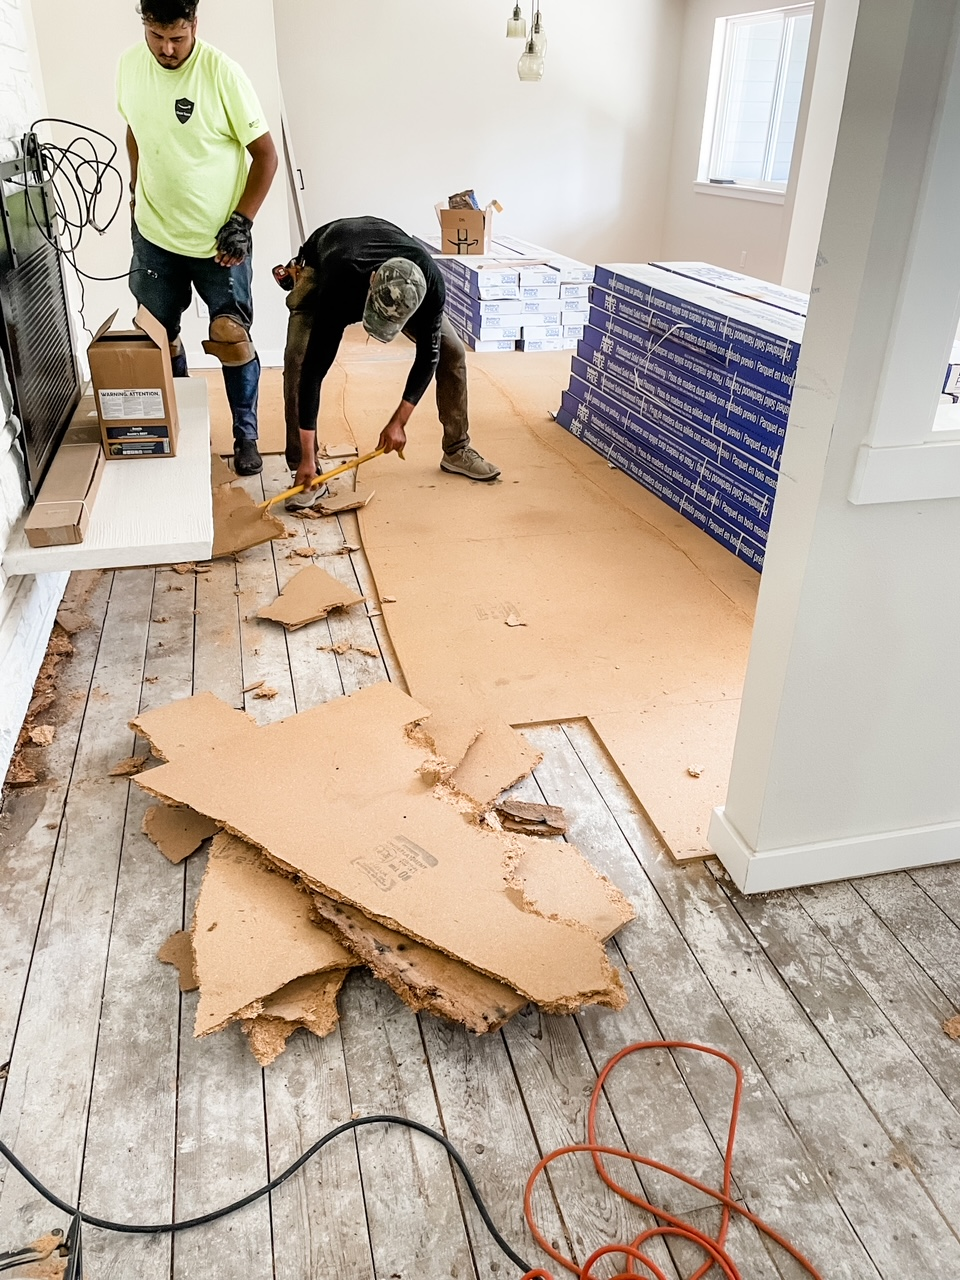 Workers tearing out the old flooring in the house